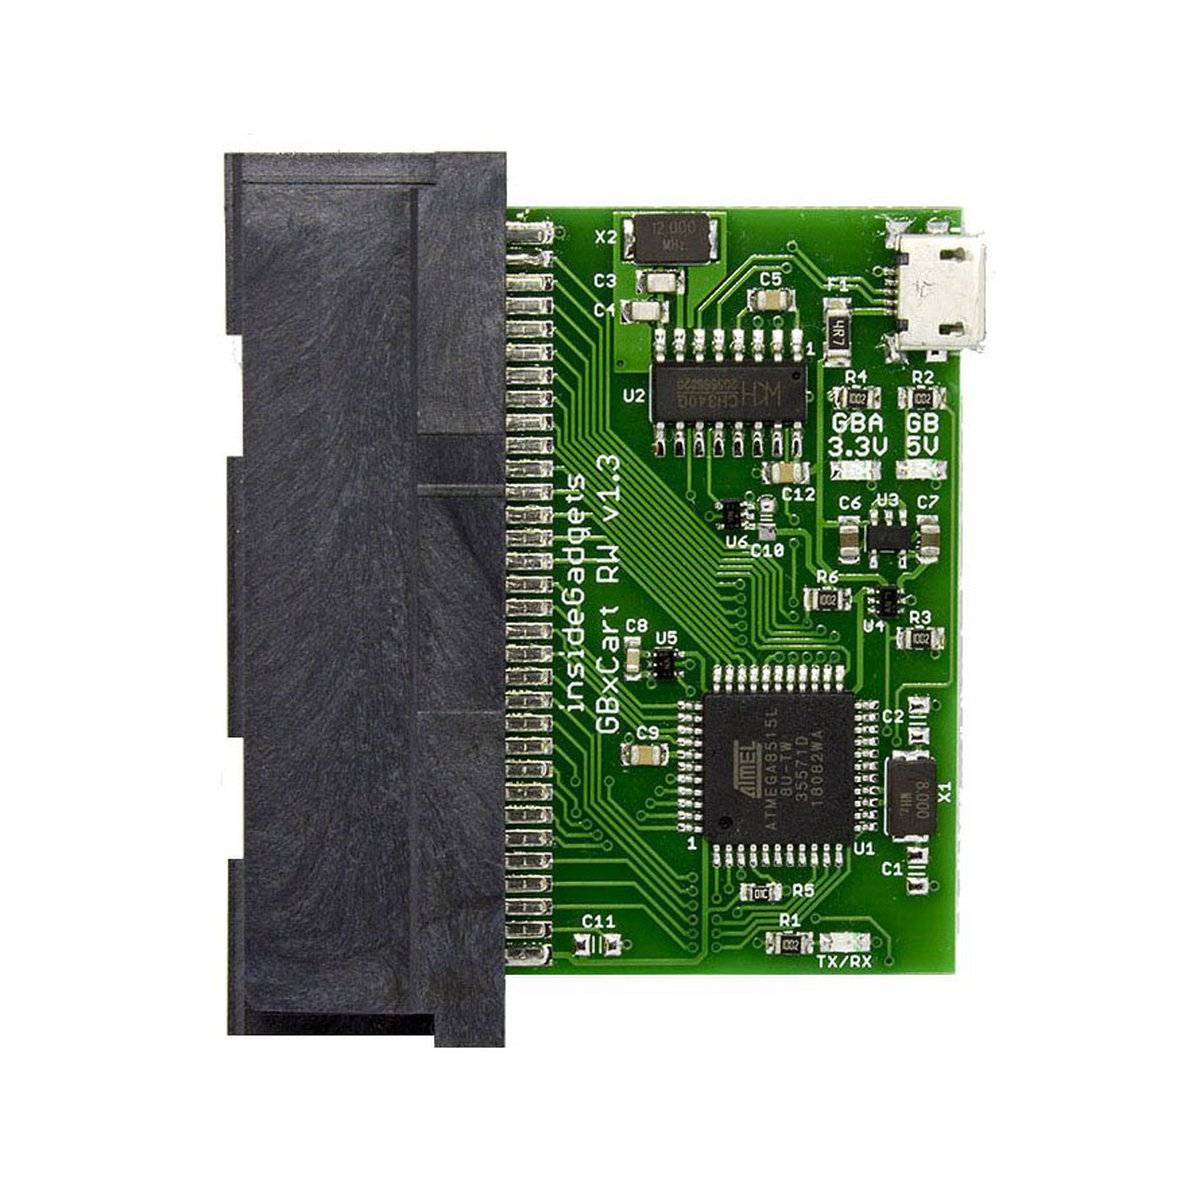 GBxCart RW (Gameboy/GBC/GBA Cart Reader/Writer) from